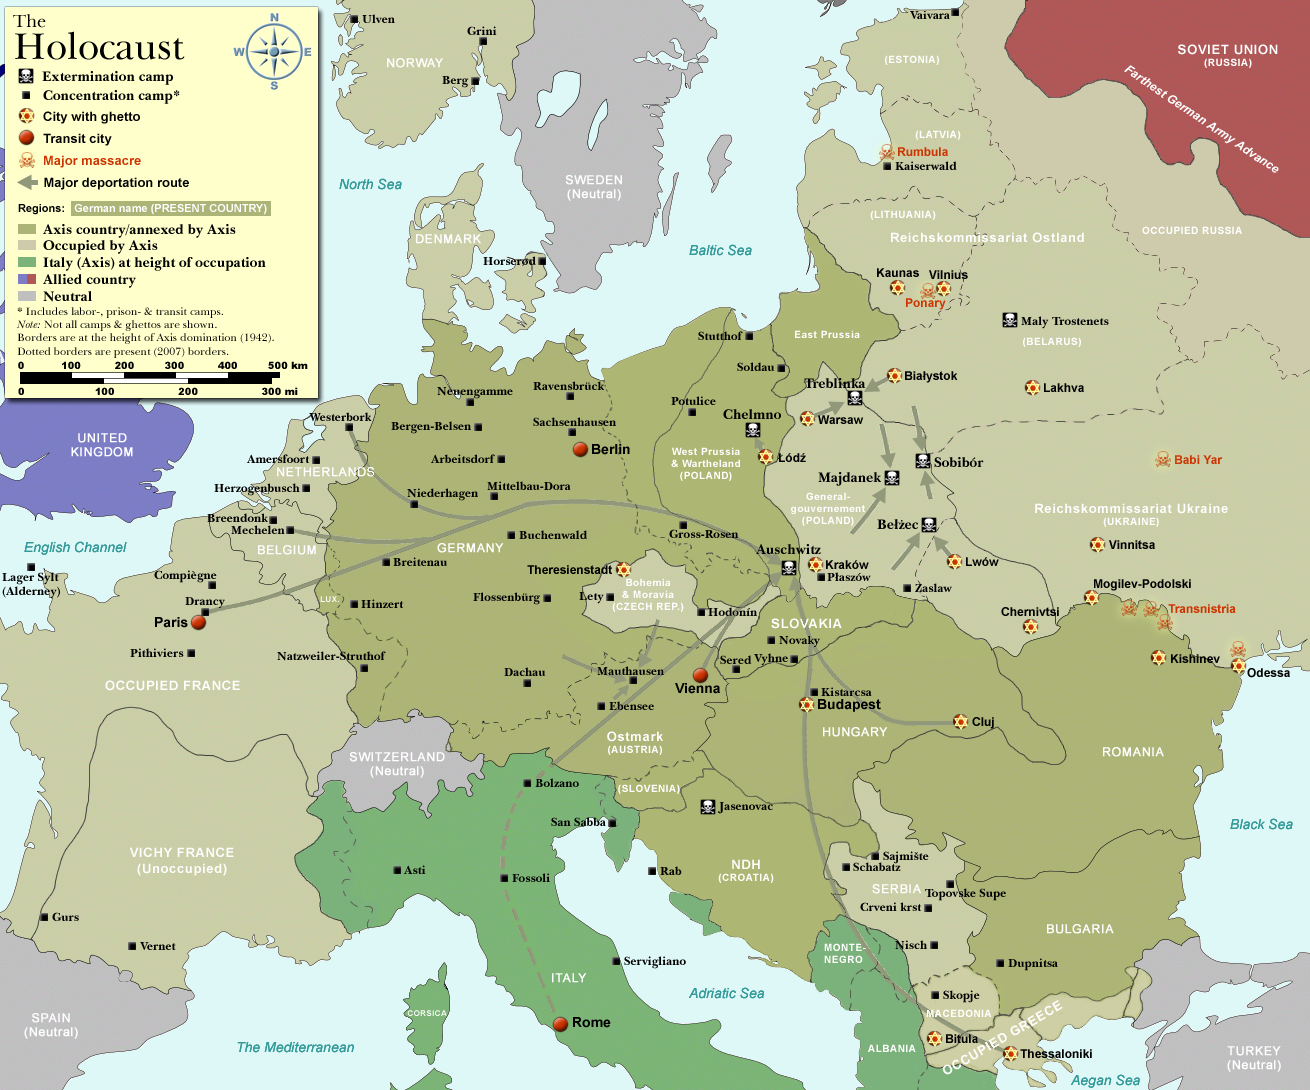 Map of the Holocaust